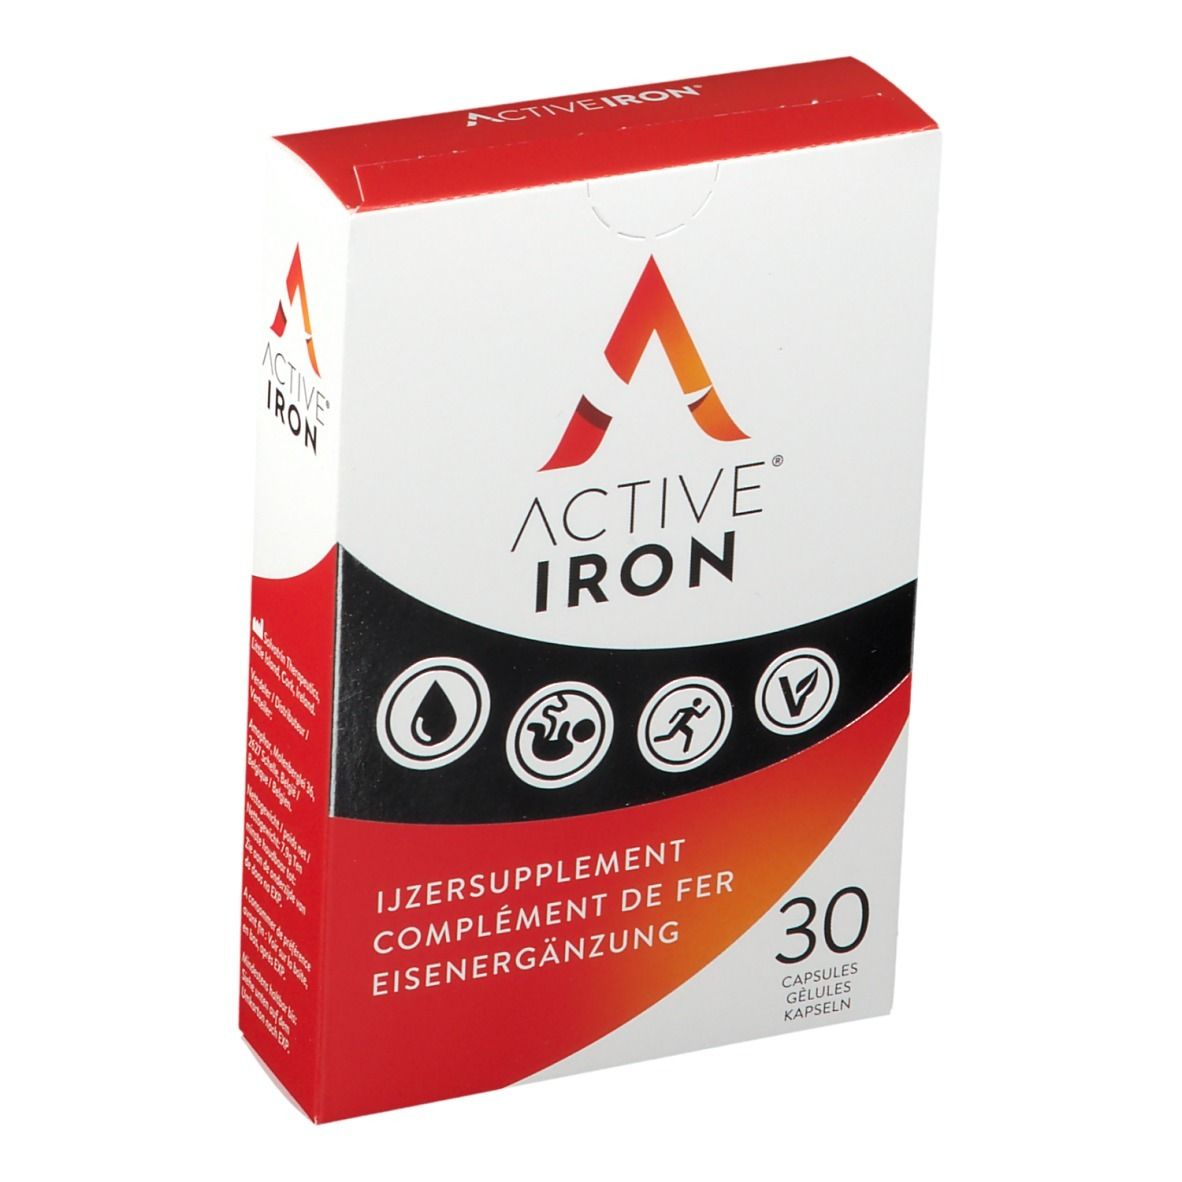 Image of ACTIVE® IRON